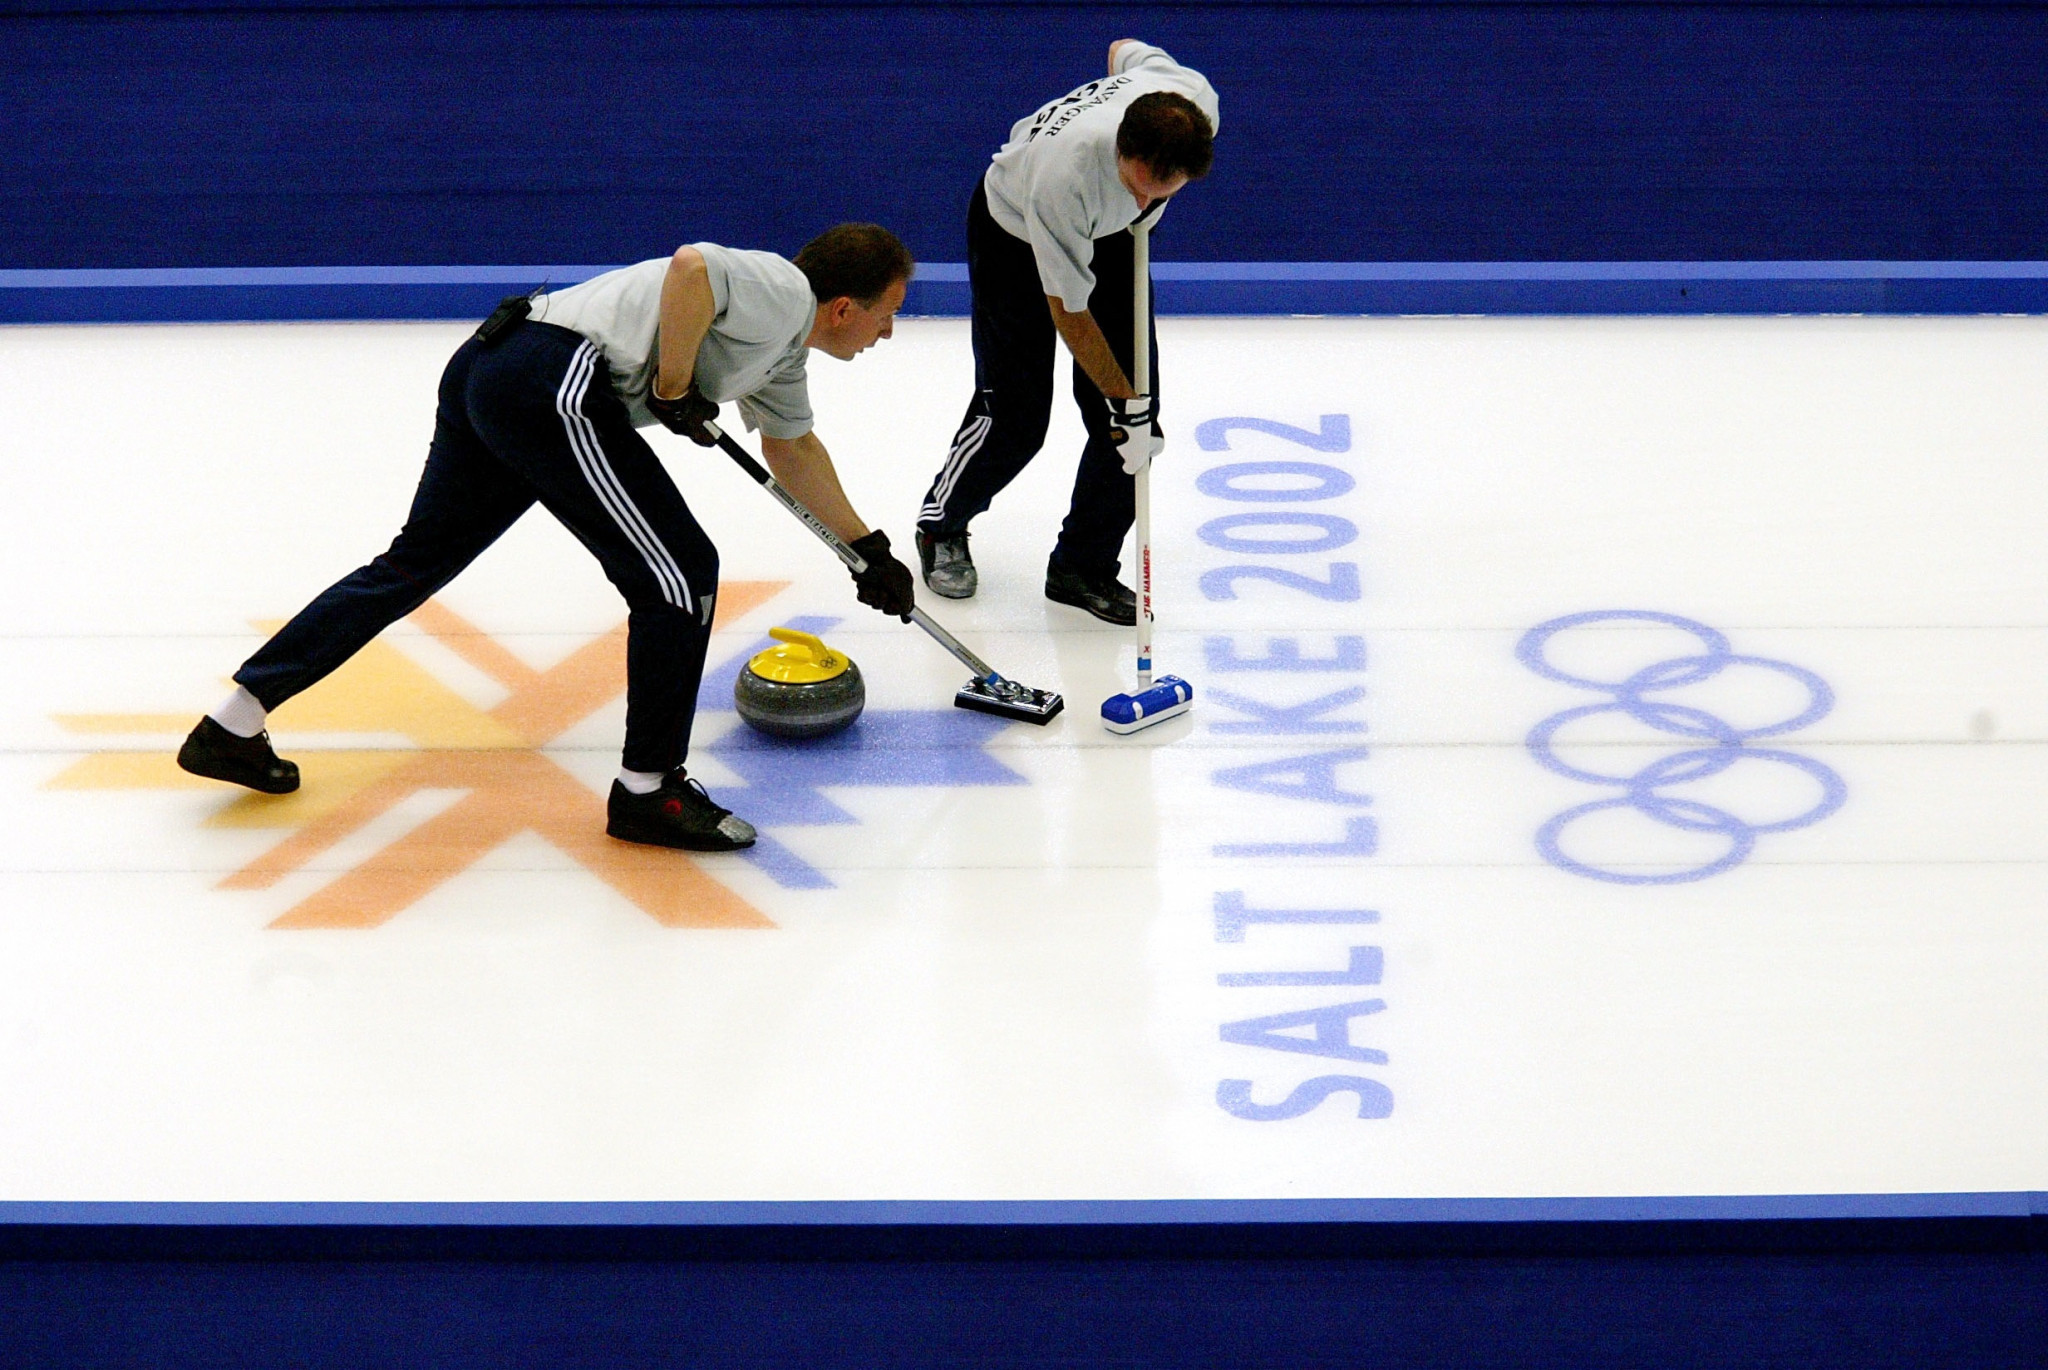 Keith Wendorf has been with the WCF since the 2002 Winter Olympic Games in Salt Lake City ©Getty Images